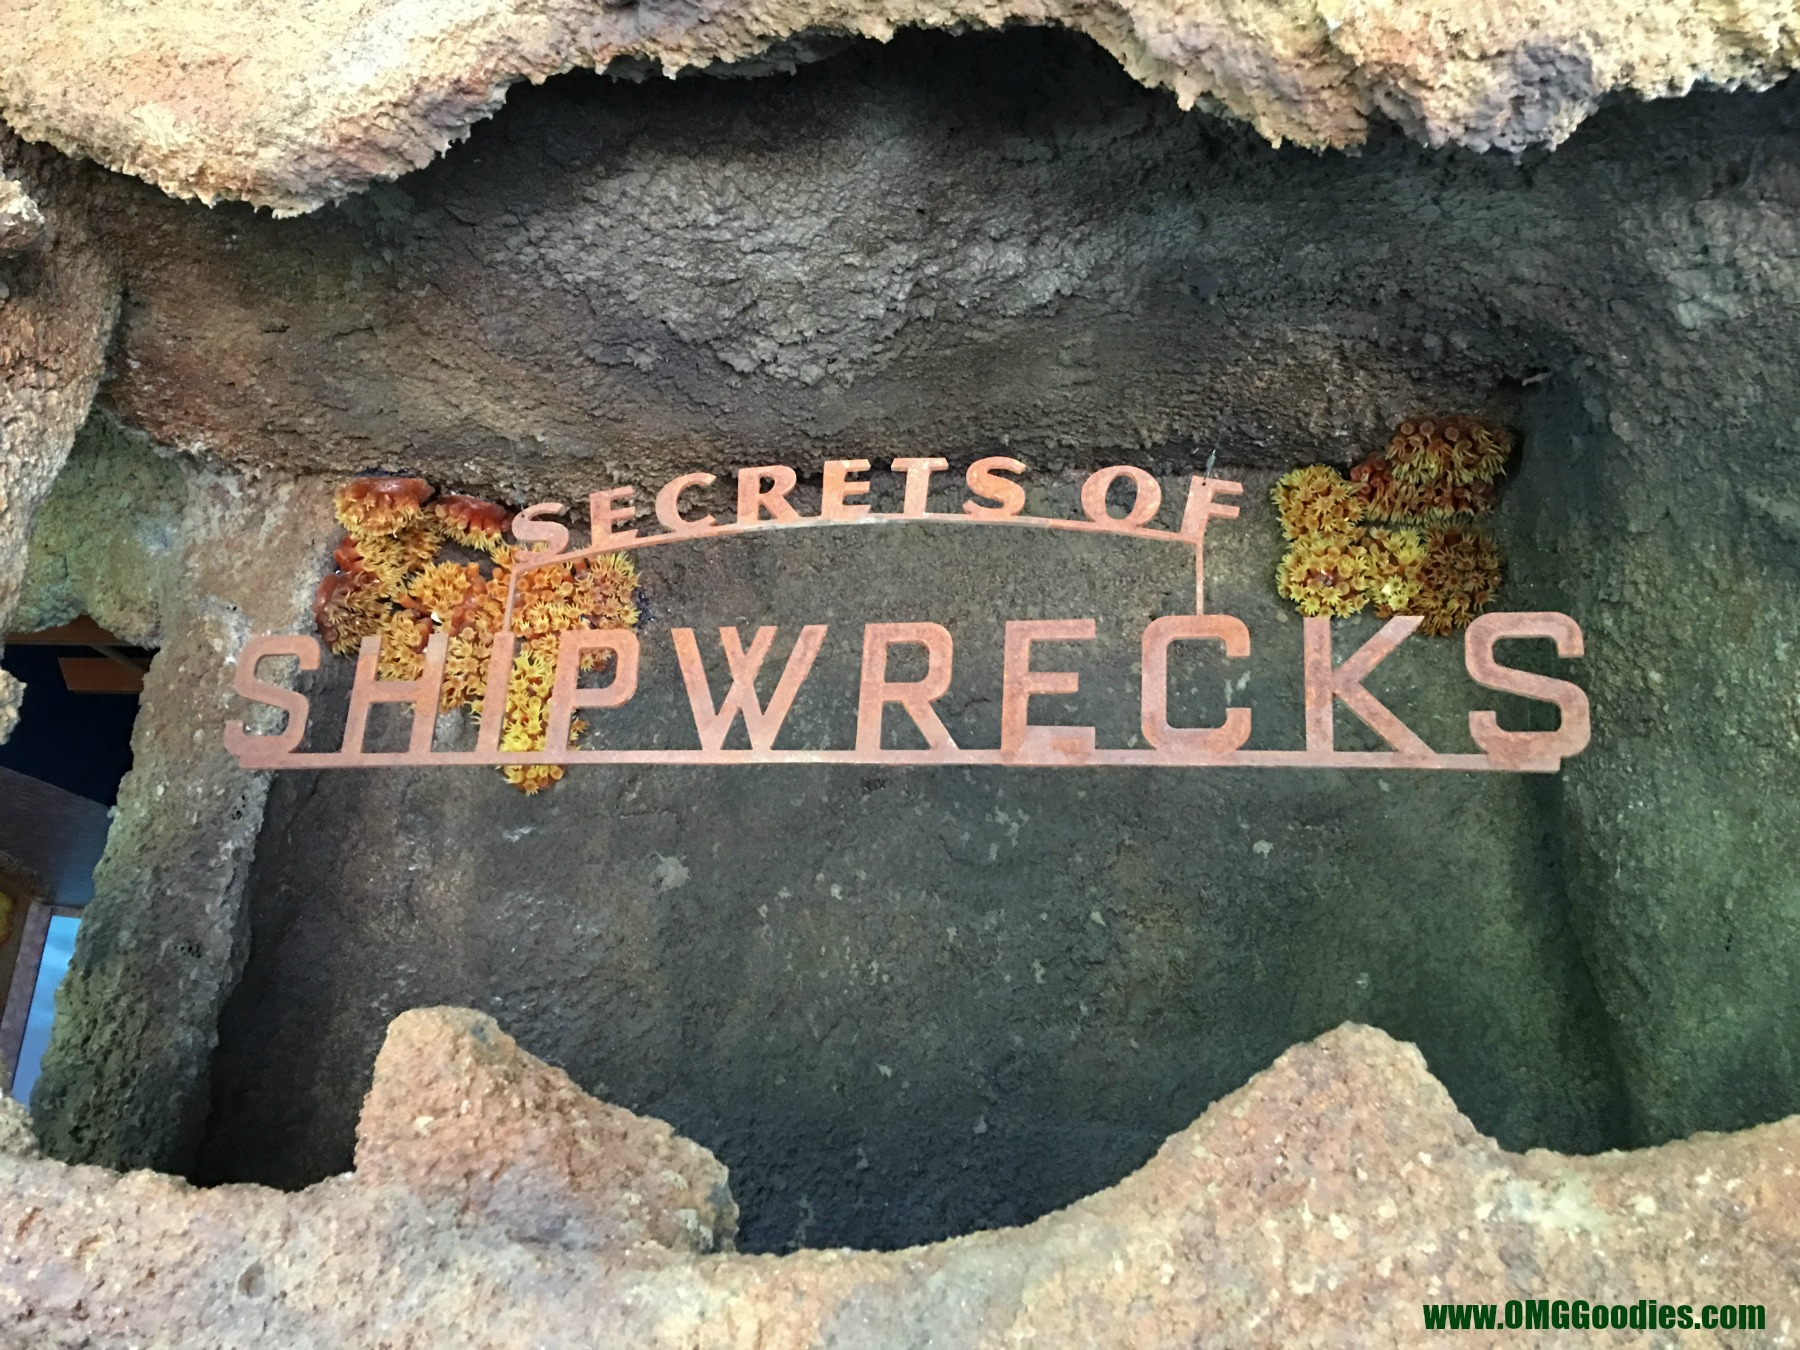 Shipwrecks exhibit